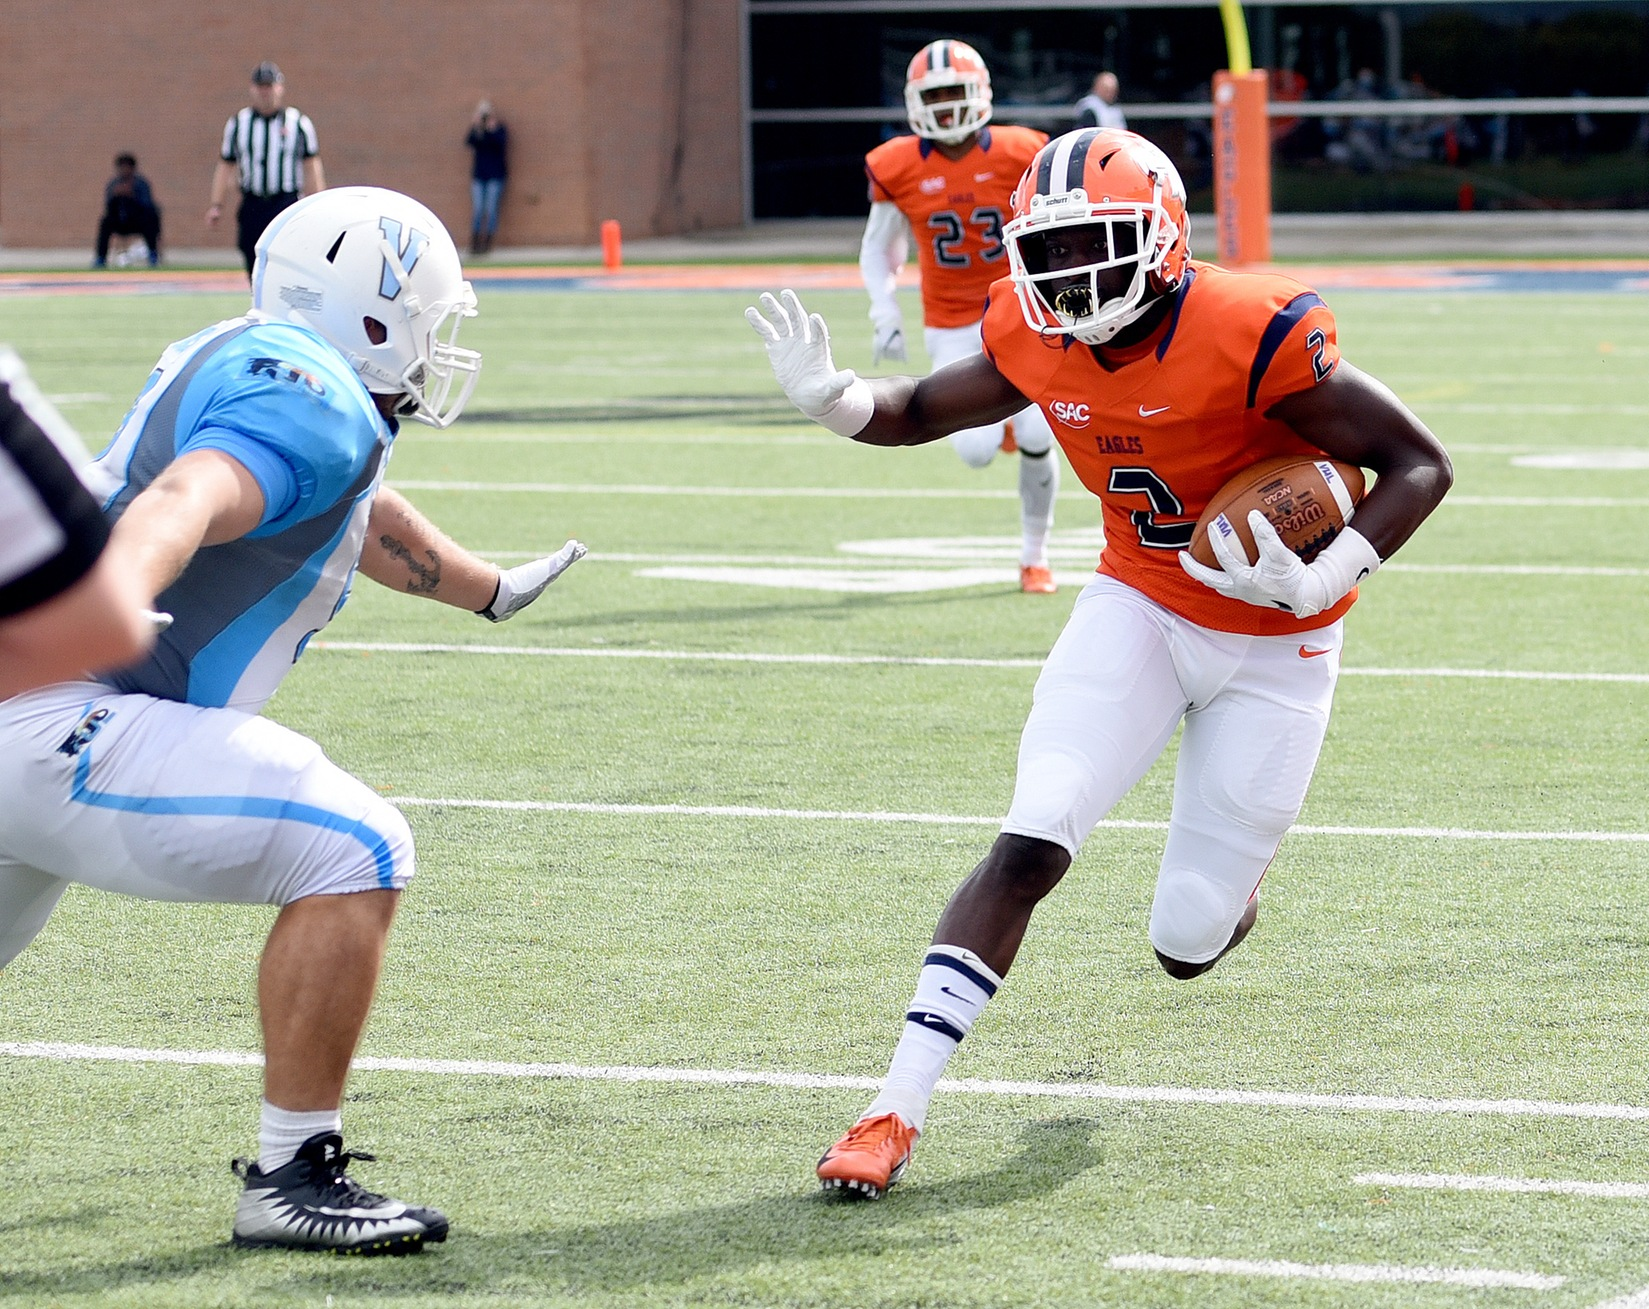 Carson-Newman flambés Dragons for fourth straight win 63-10